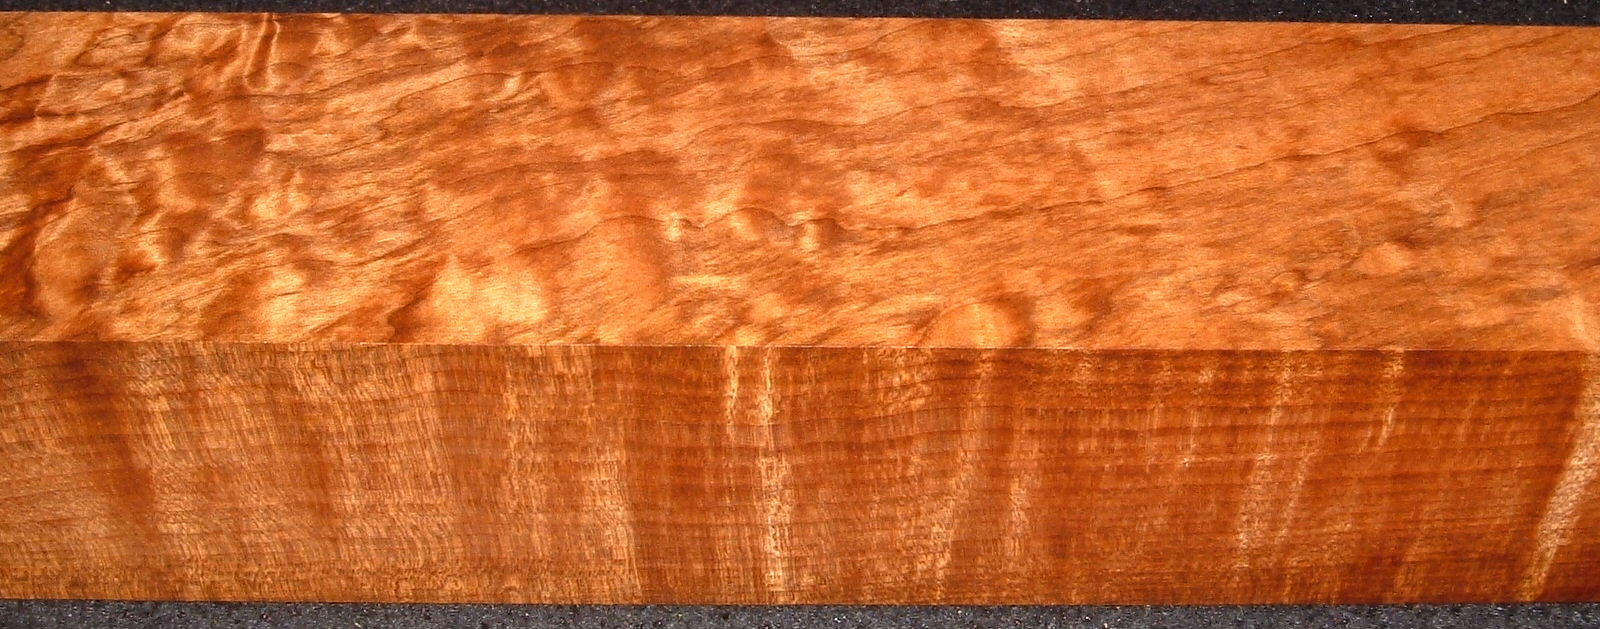 RTB-7,2-5/8x2-3/4x28, Torrefied Roasted, Curly/Blistered Quilted Figured, Maple Turning Block